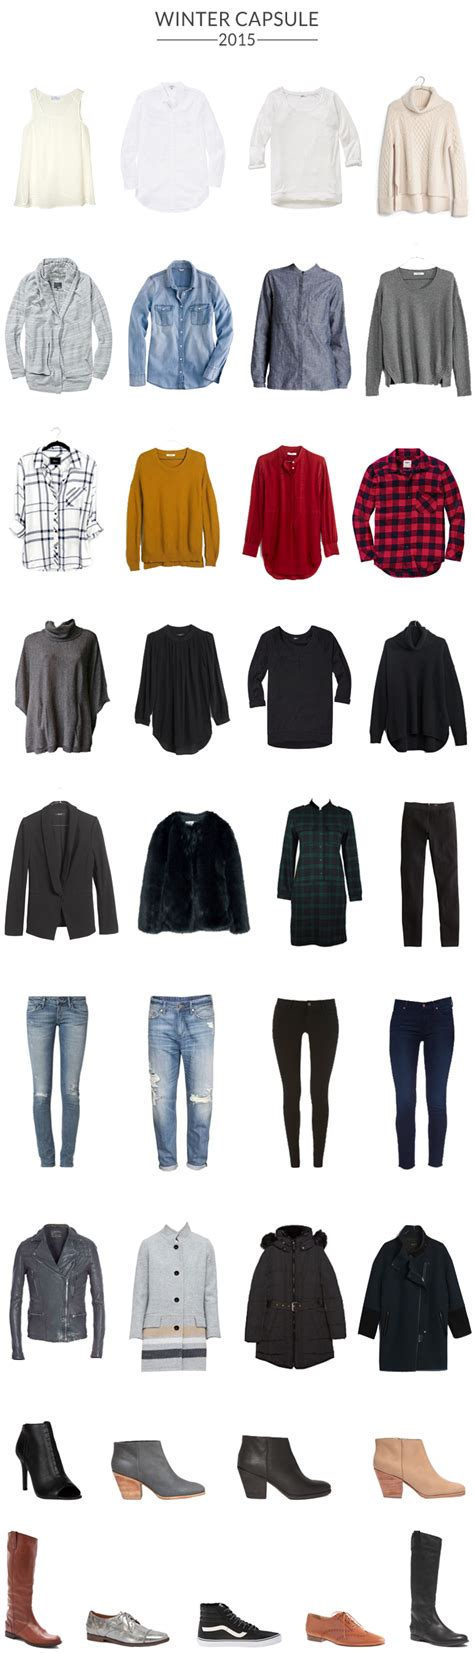 capsule wardrobe i m intrigued the reluctant islander